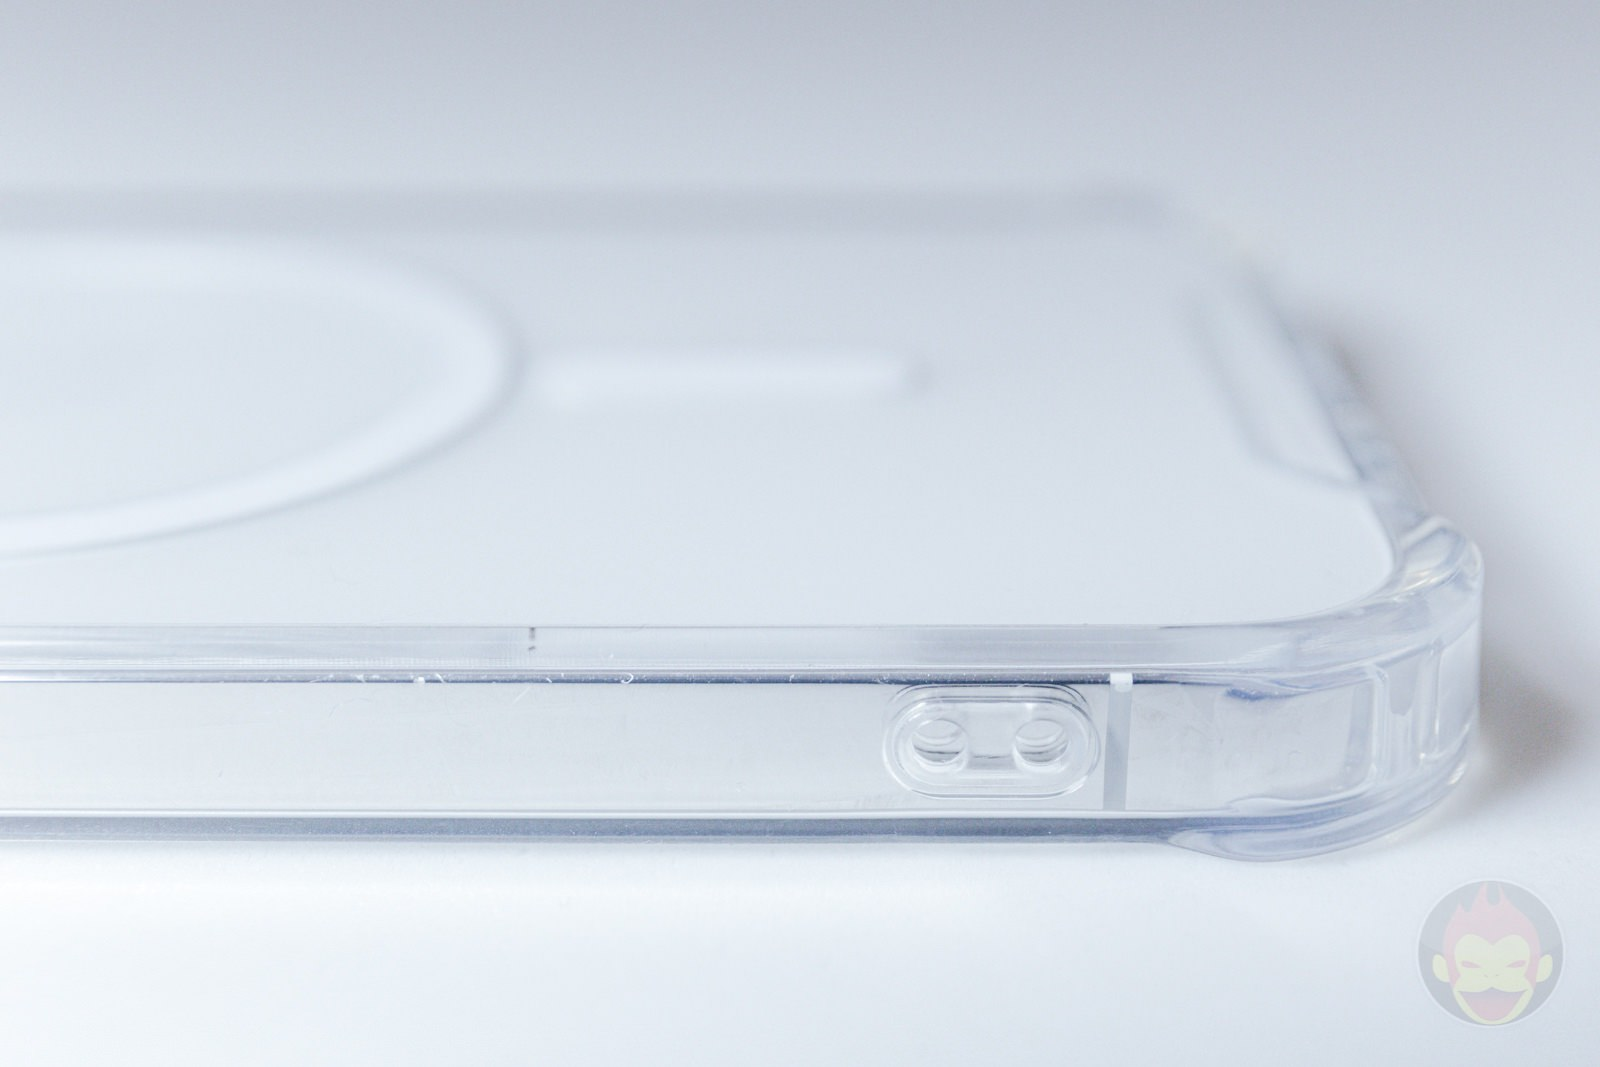 Beyeah iPhone12Pro Clear MagSafe Case Review 03